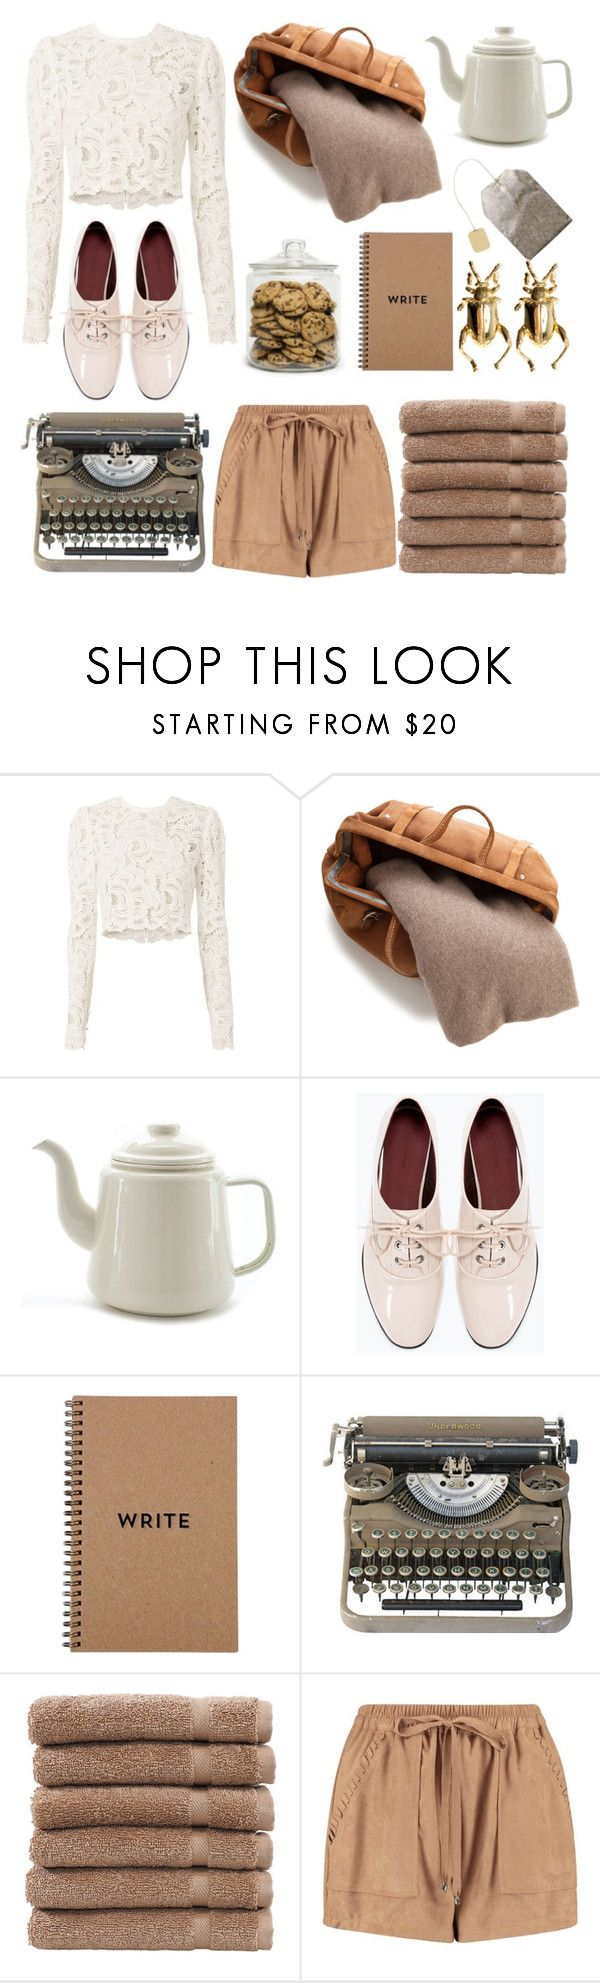 """Write me a novel"" by alongcametwiggy ❤ liked on Polyvore featuring A.L.C., White + Warren, Zara, Guide London, Brika, Linum Home Textiles, Boohoo and Dominic Jones"